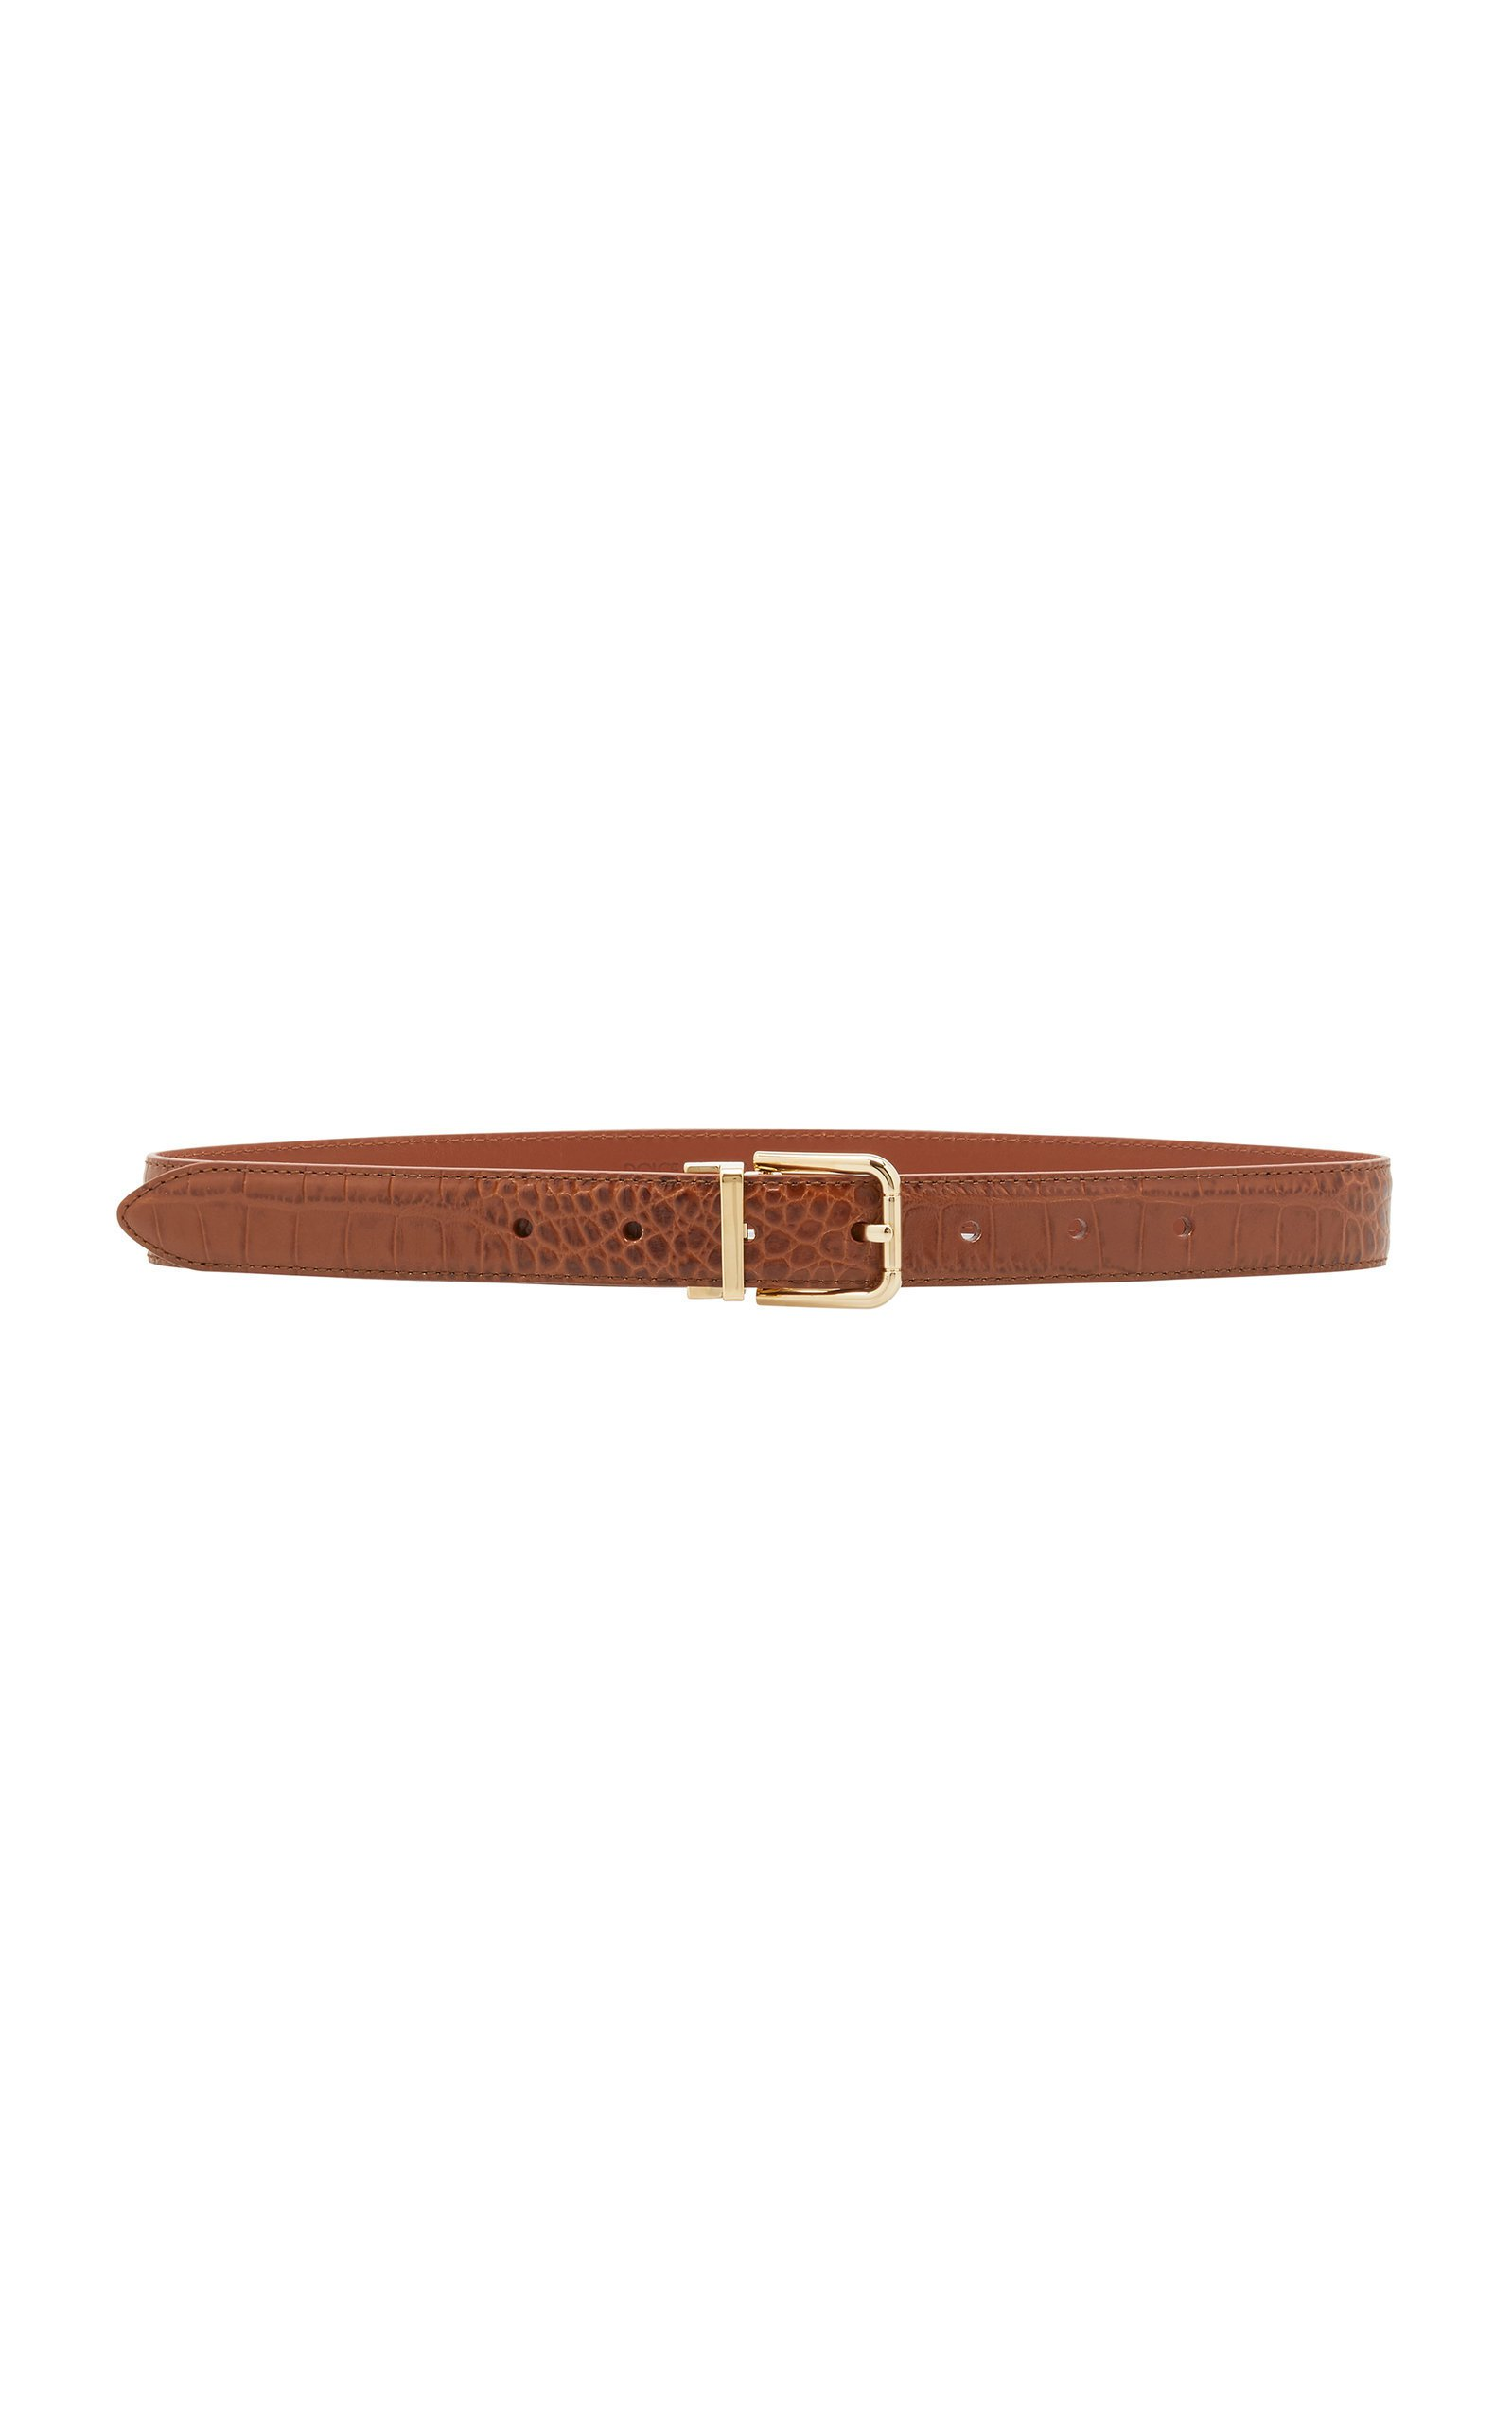 Dolce & Gabbana Croc-Effect Leather Belt Size: 85 cm